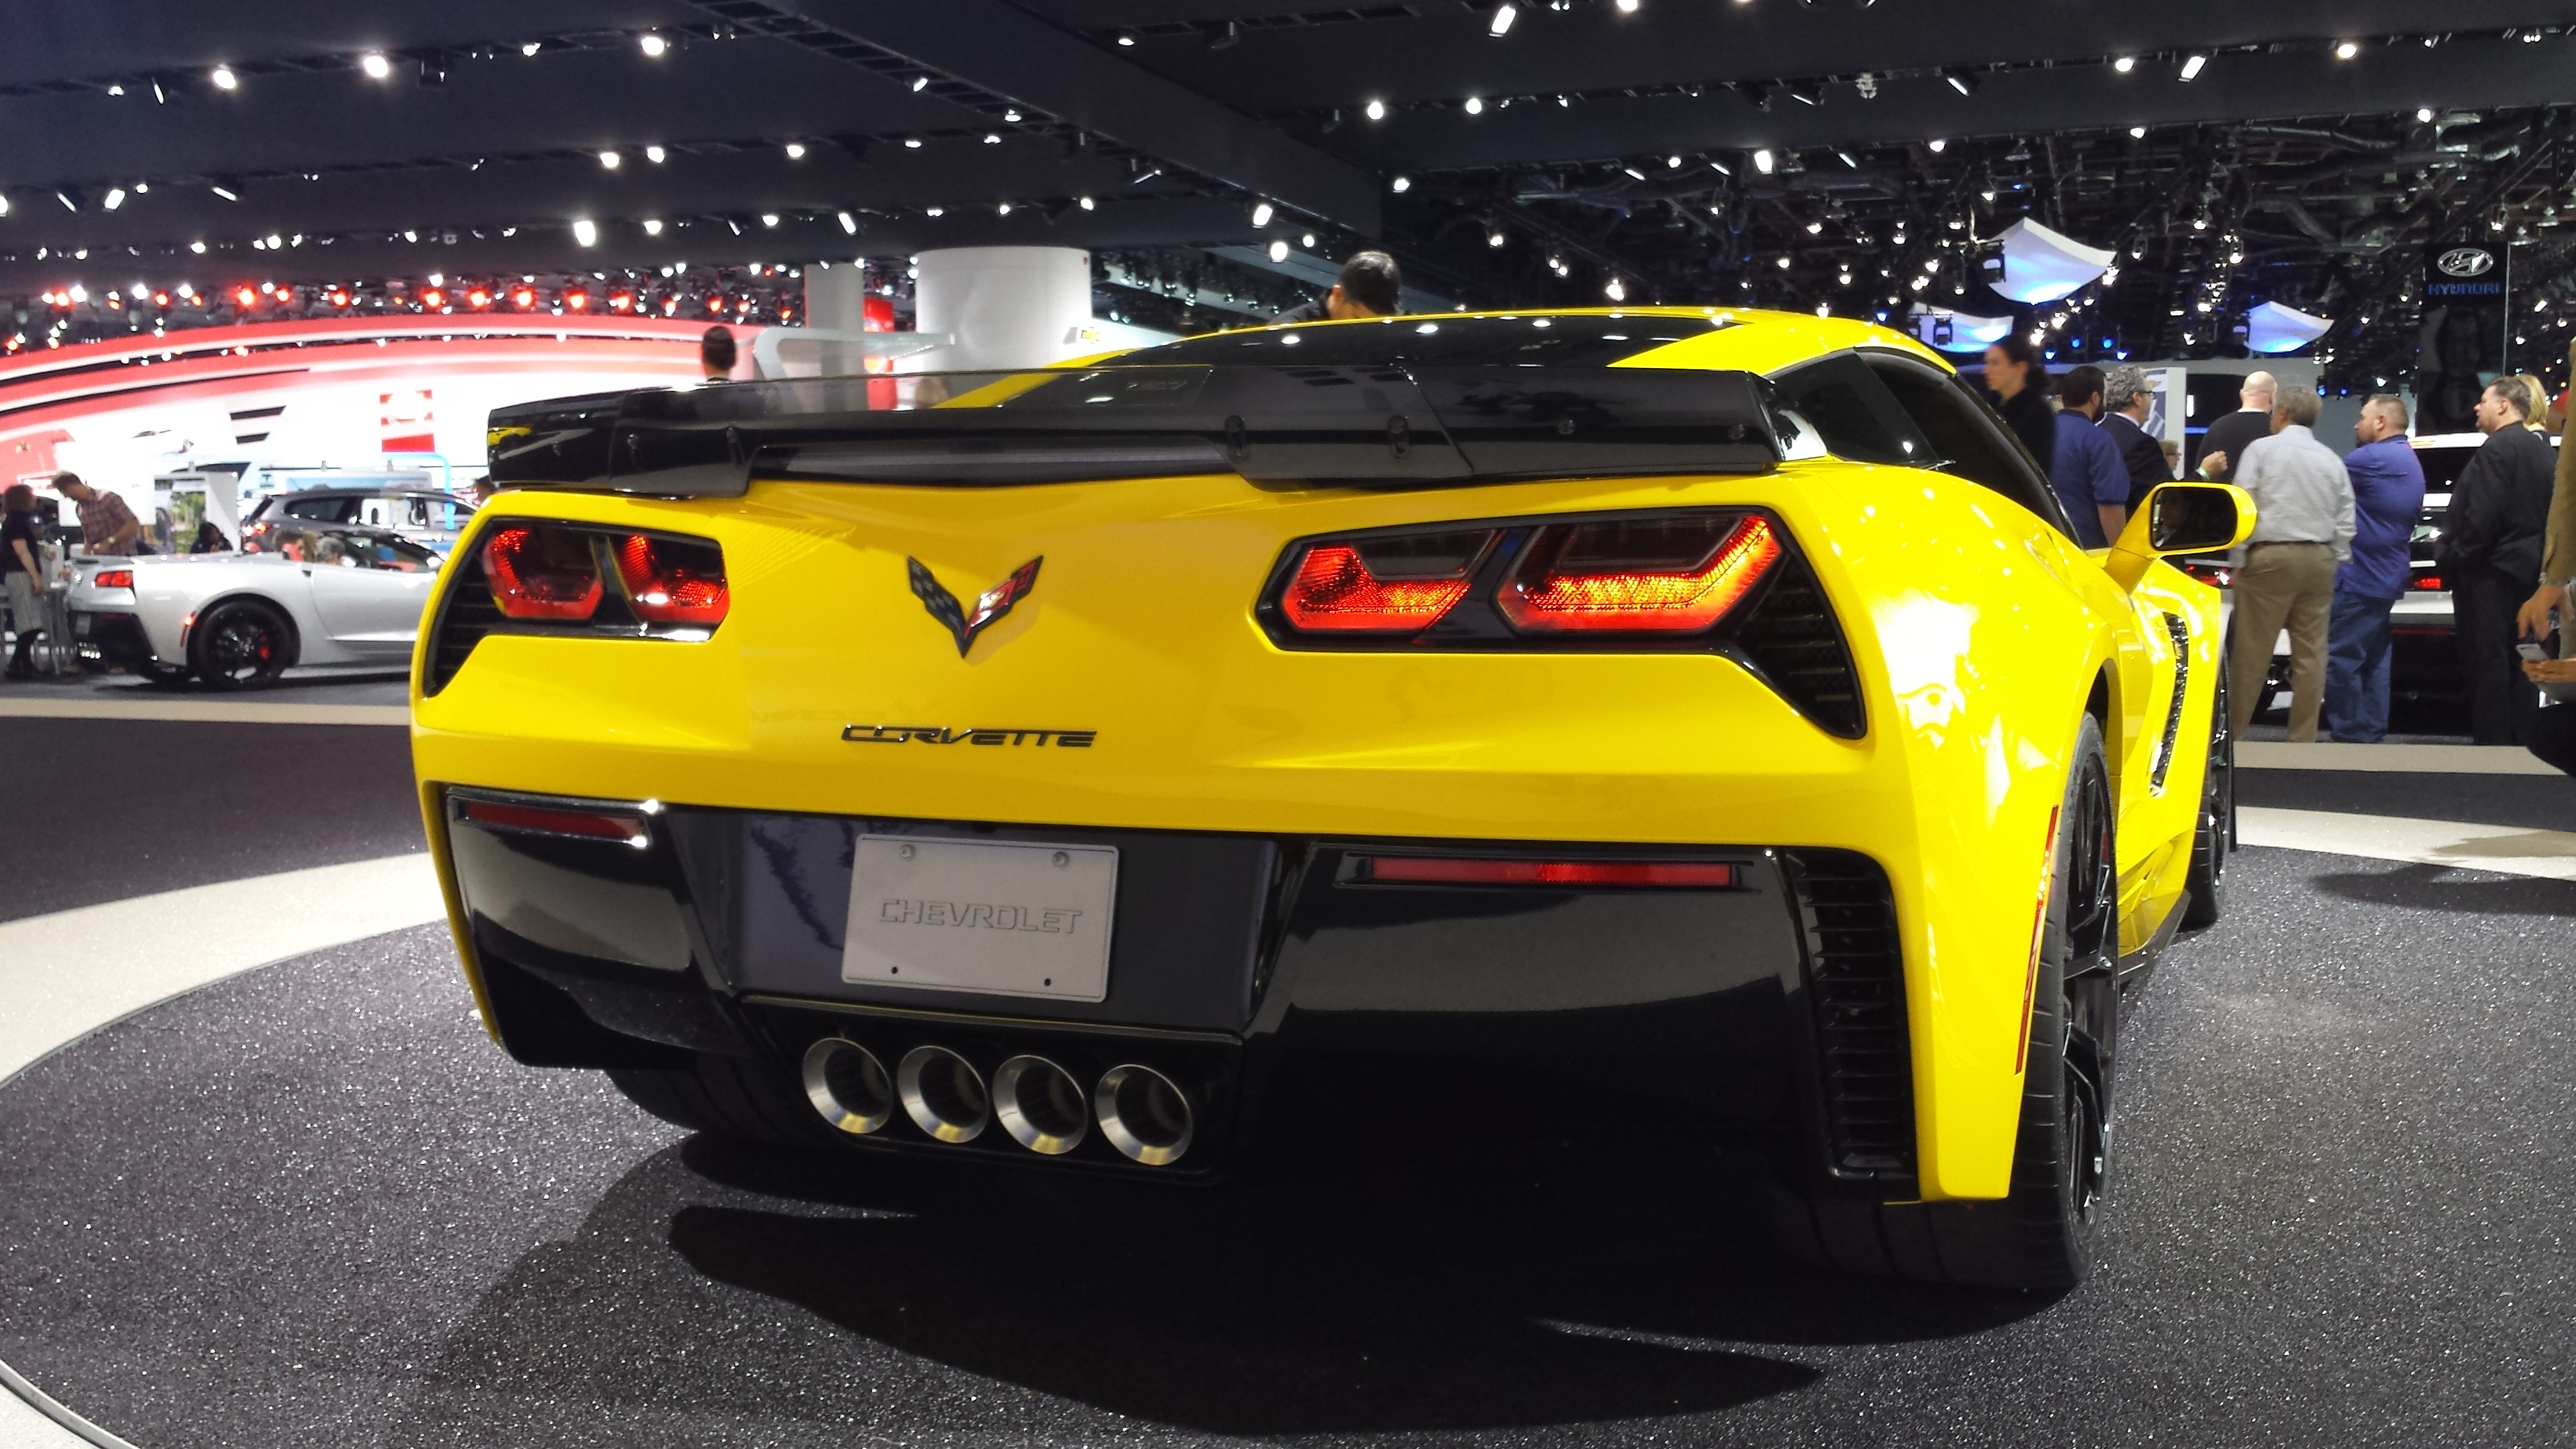 Chevrolet Corvette Stingray 2015 #10